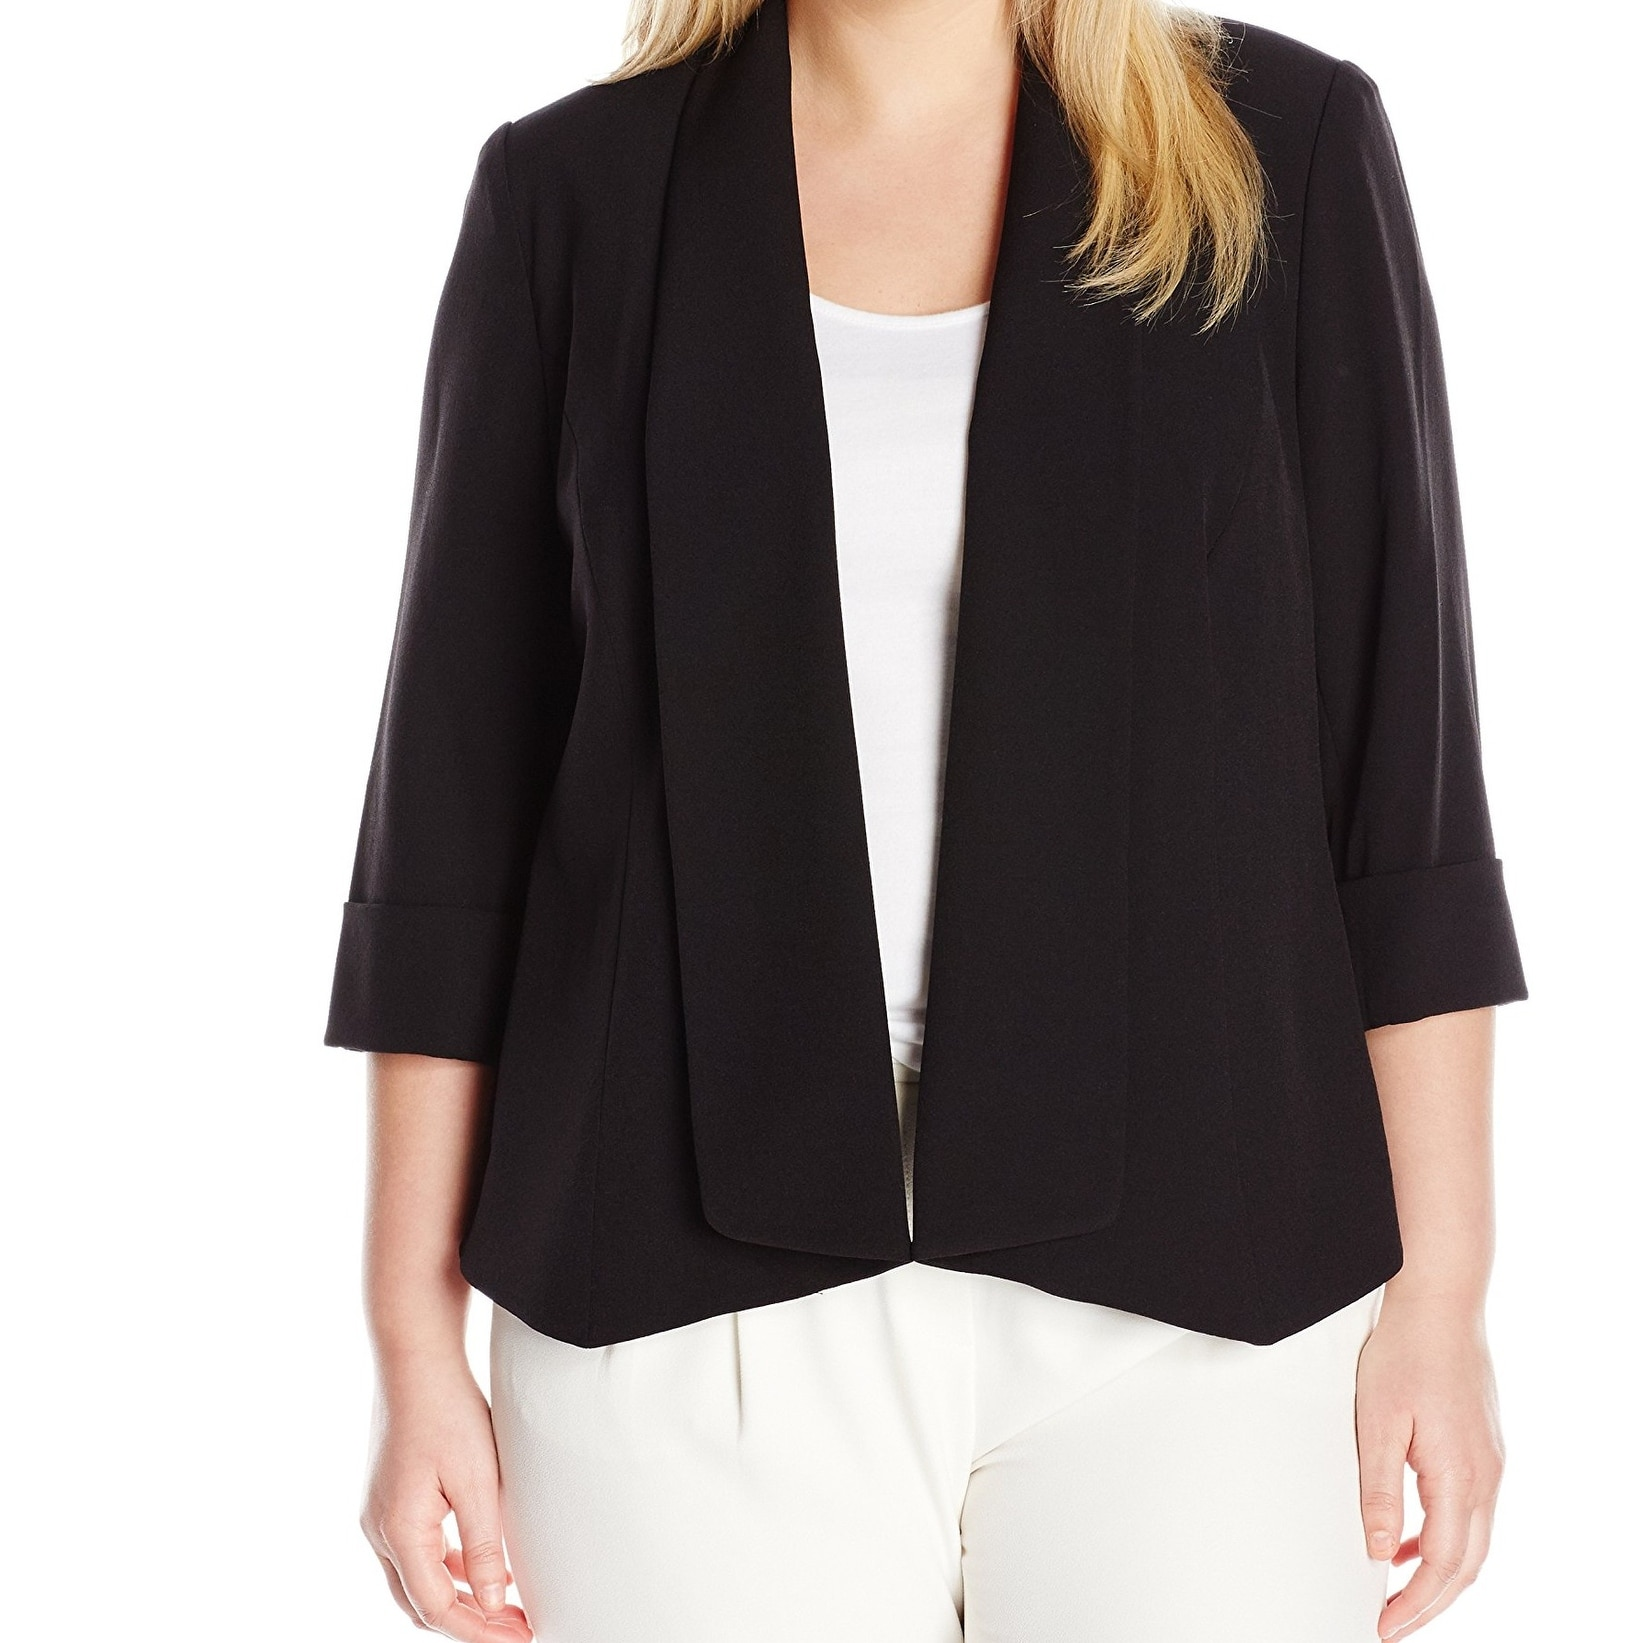 ebd7daa74a9fb Kasper Black Womens Size 24W Plus Open Front Roll Sleeve Jacket - Free  Shipping On Orders Over  45 - Overstock - 27420000